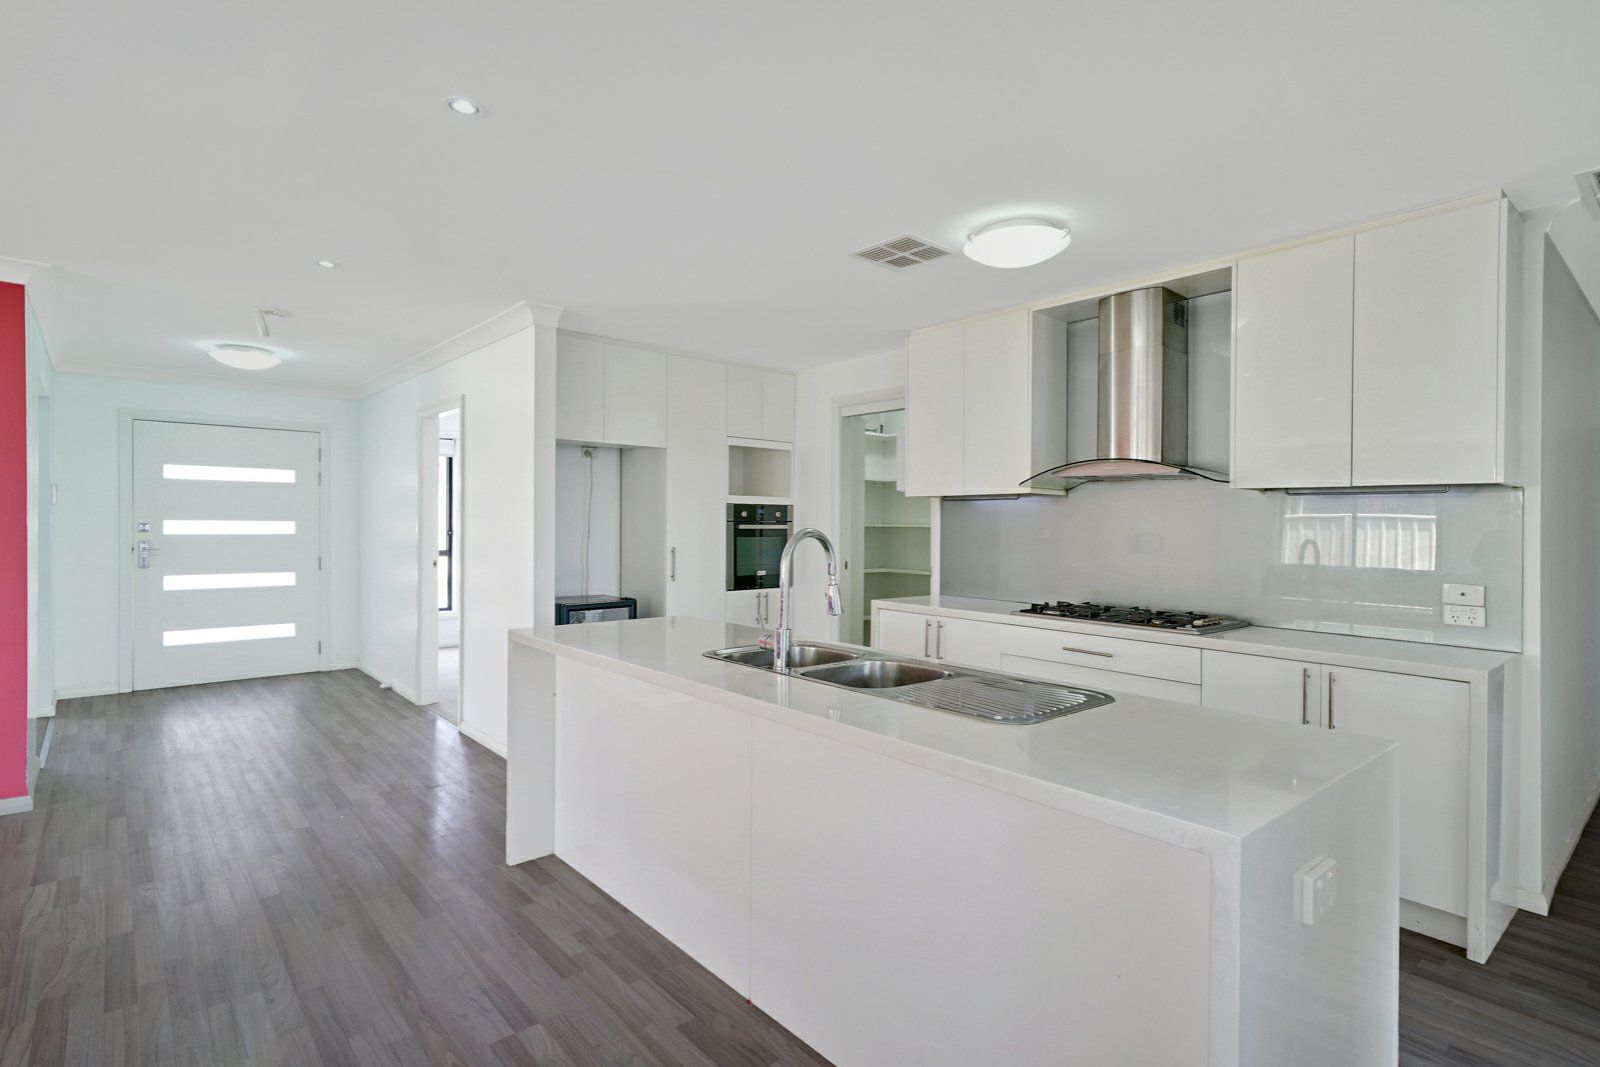 113A Minto Rd, Minto NSW 2566, Image 1